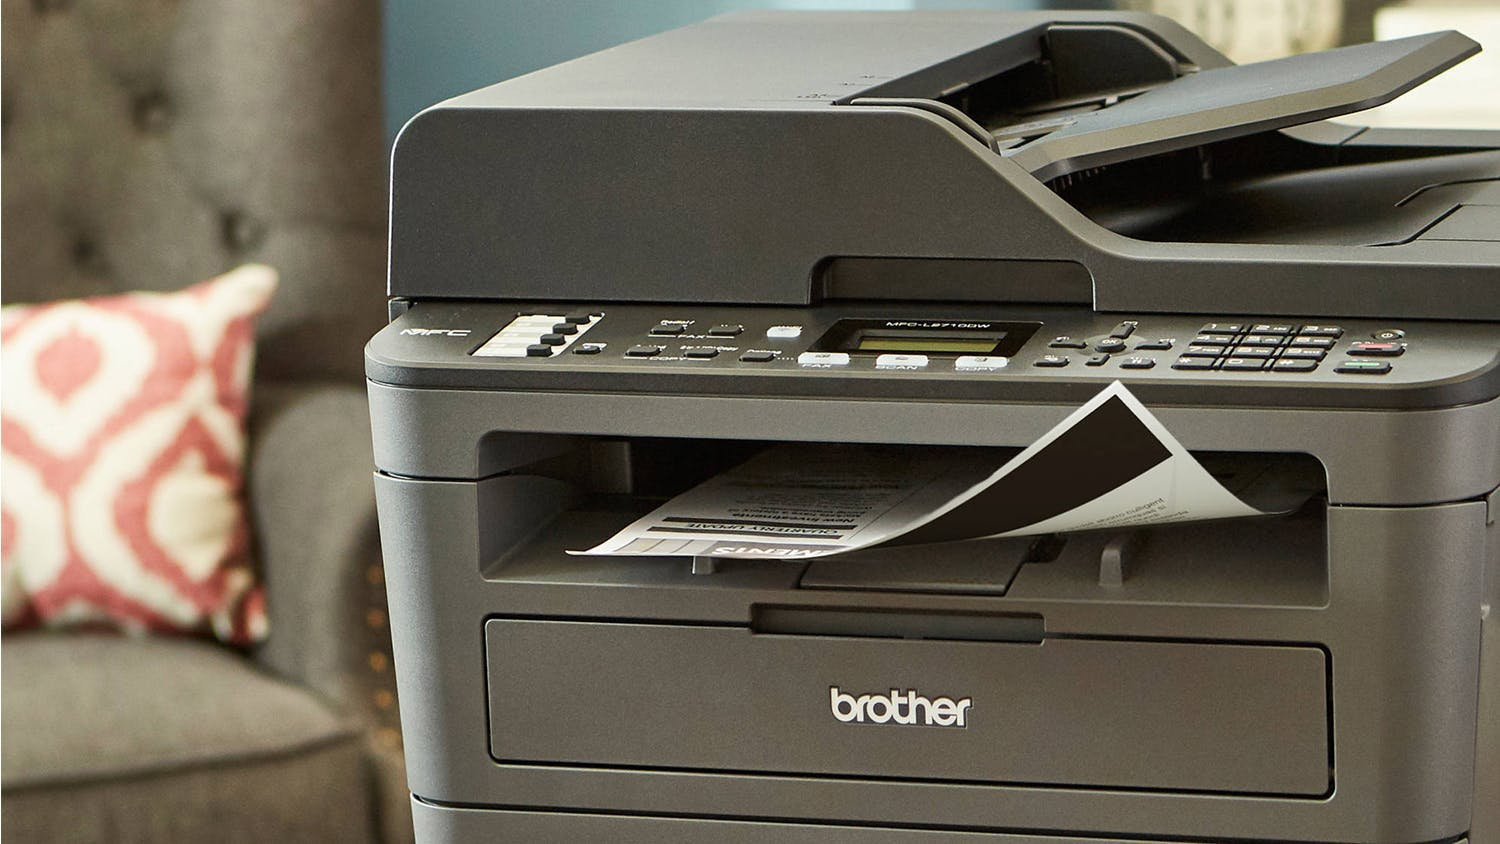 Brother MFCL2713DW Mono Laser All-in-One Printer